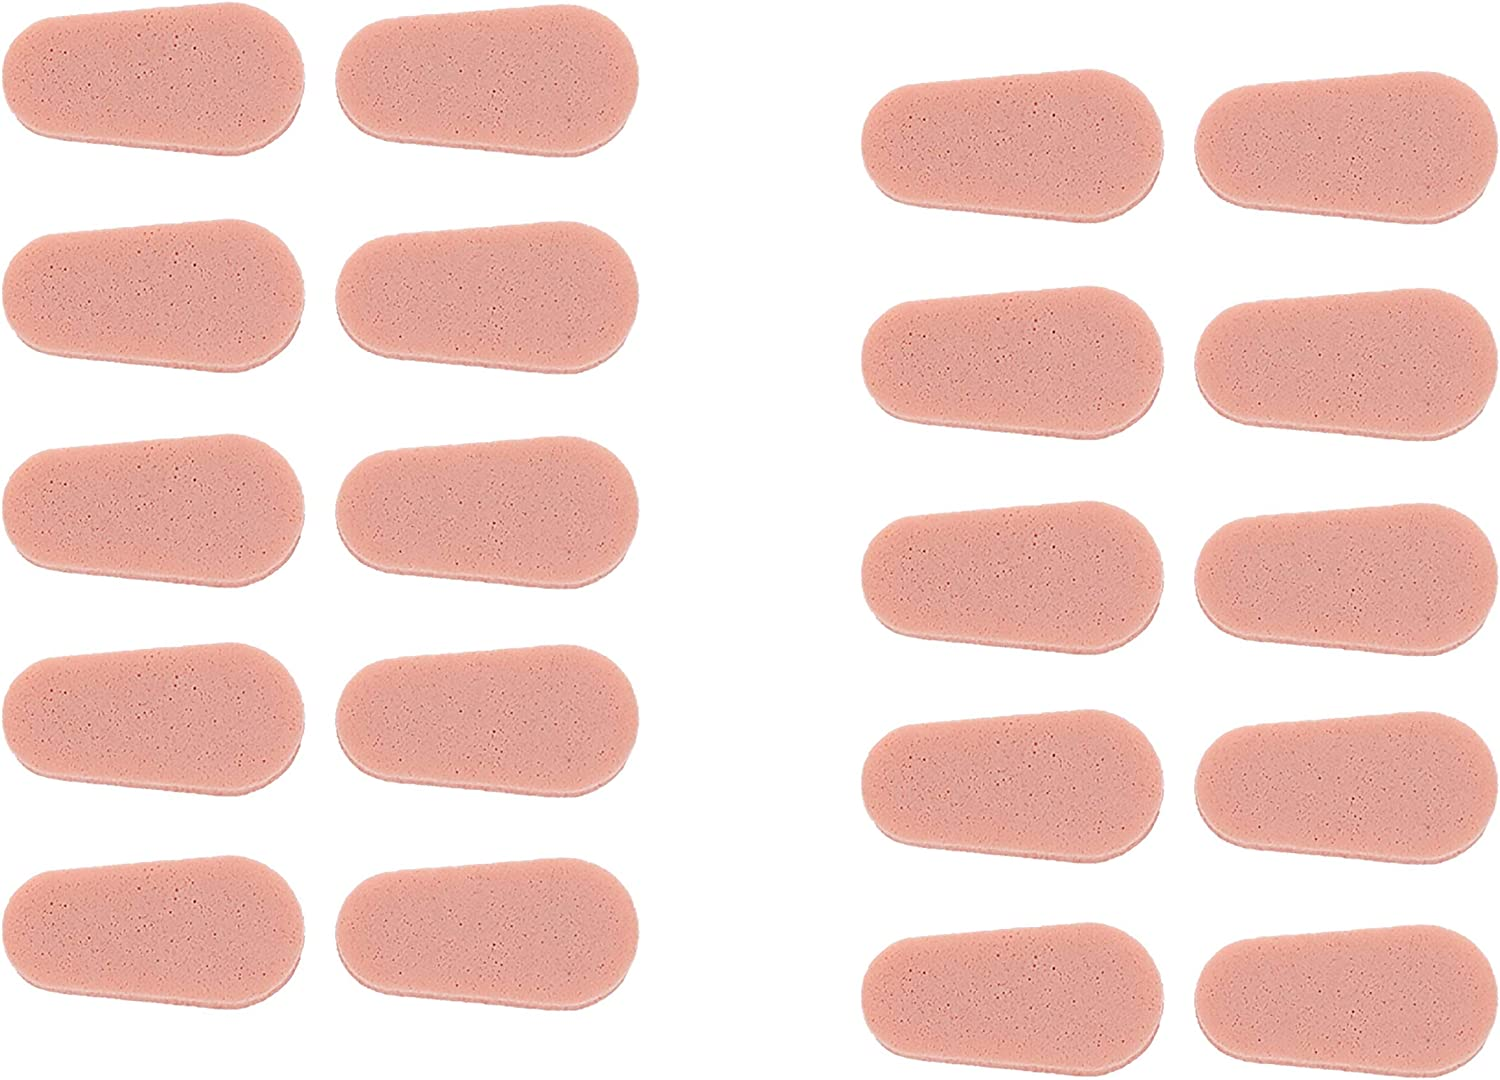 Epad Stick On Adhesive Soft Foam Nose Pads for Glasses (2-Sheet Pack - 20 Pads, Peach)